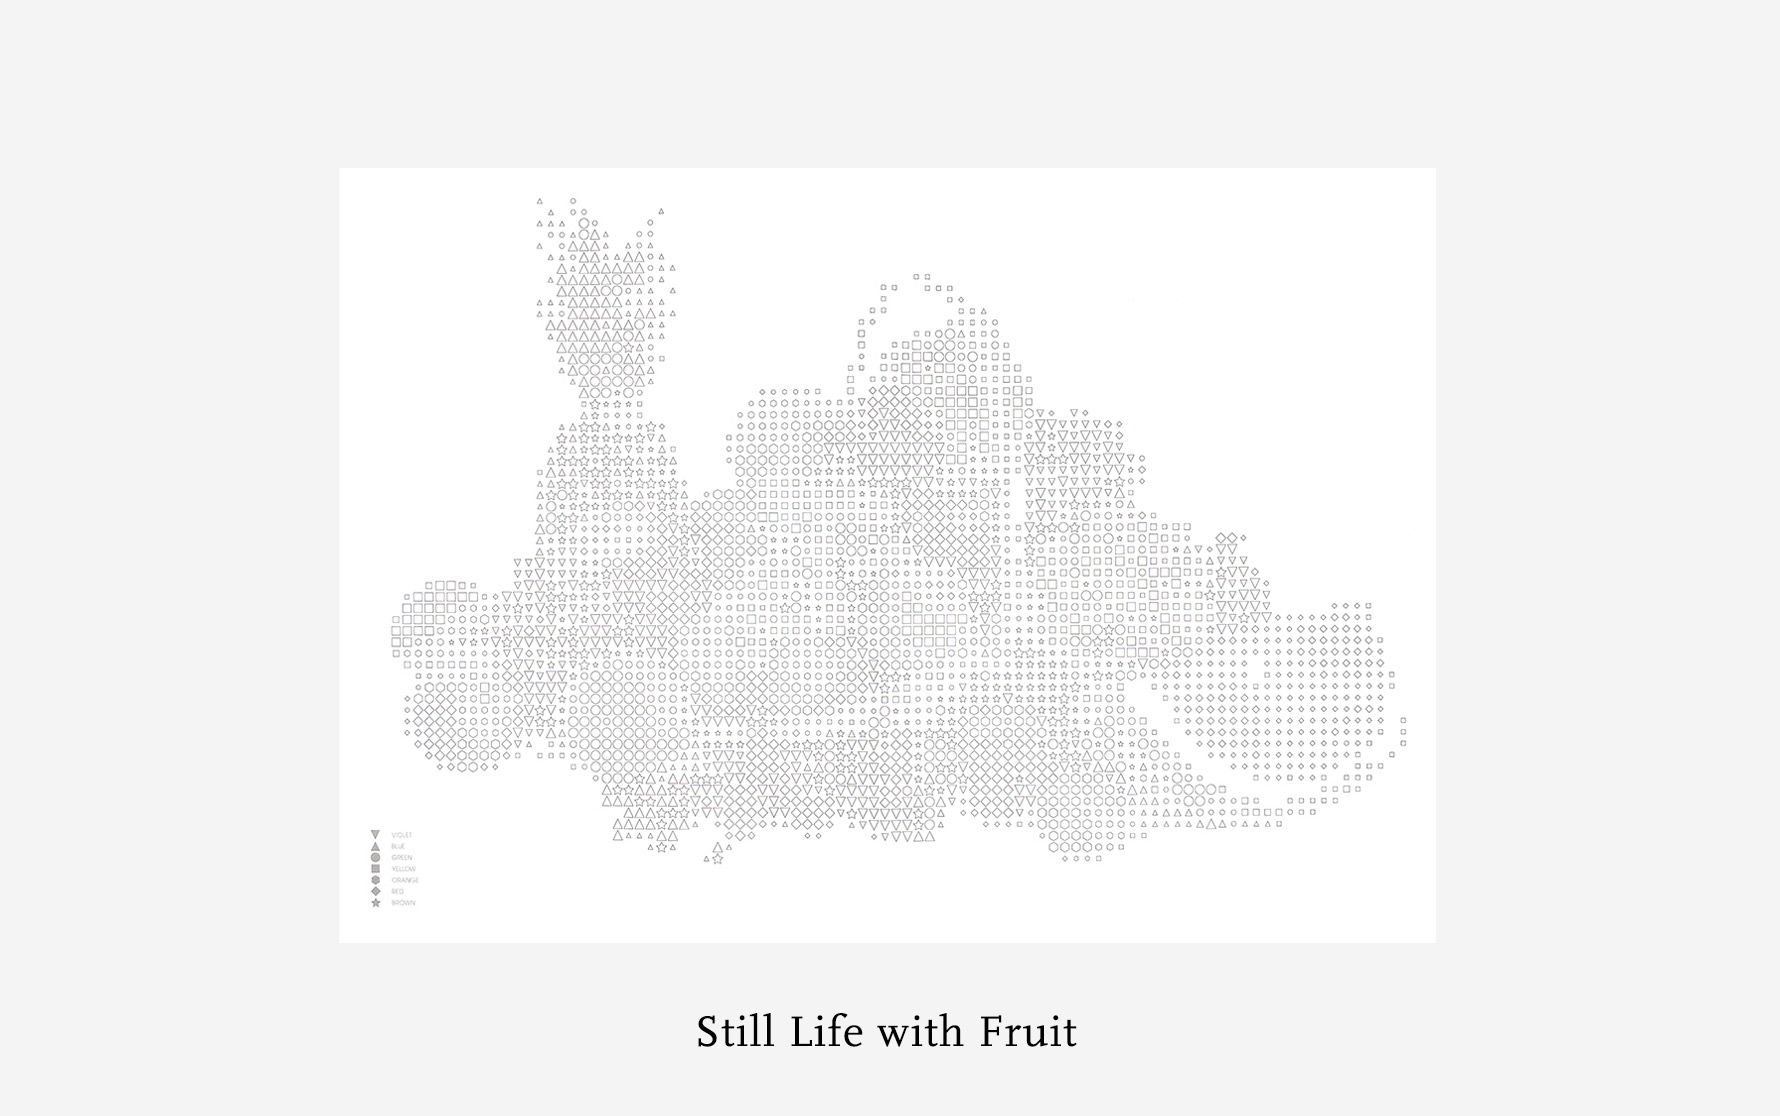 Therapeutic Colouring A1  Poster : Still Life with Fruit - Daily Mind